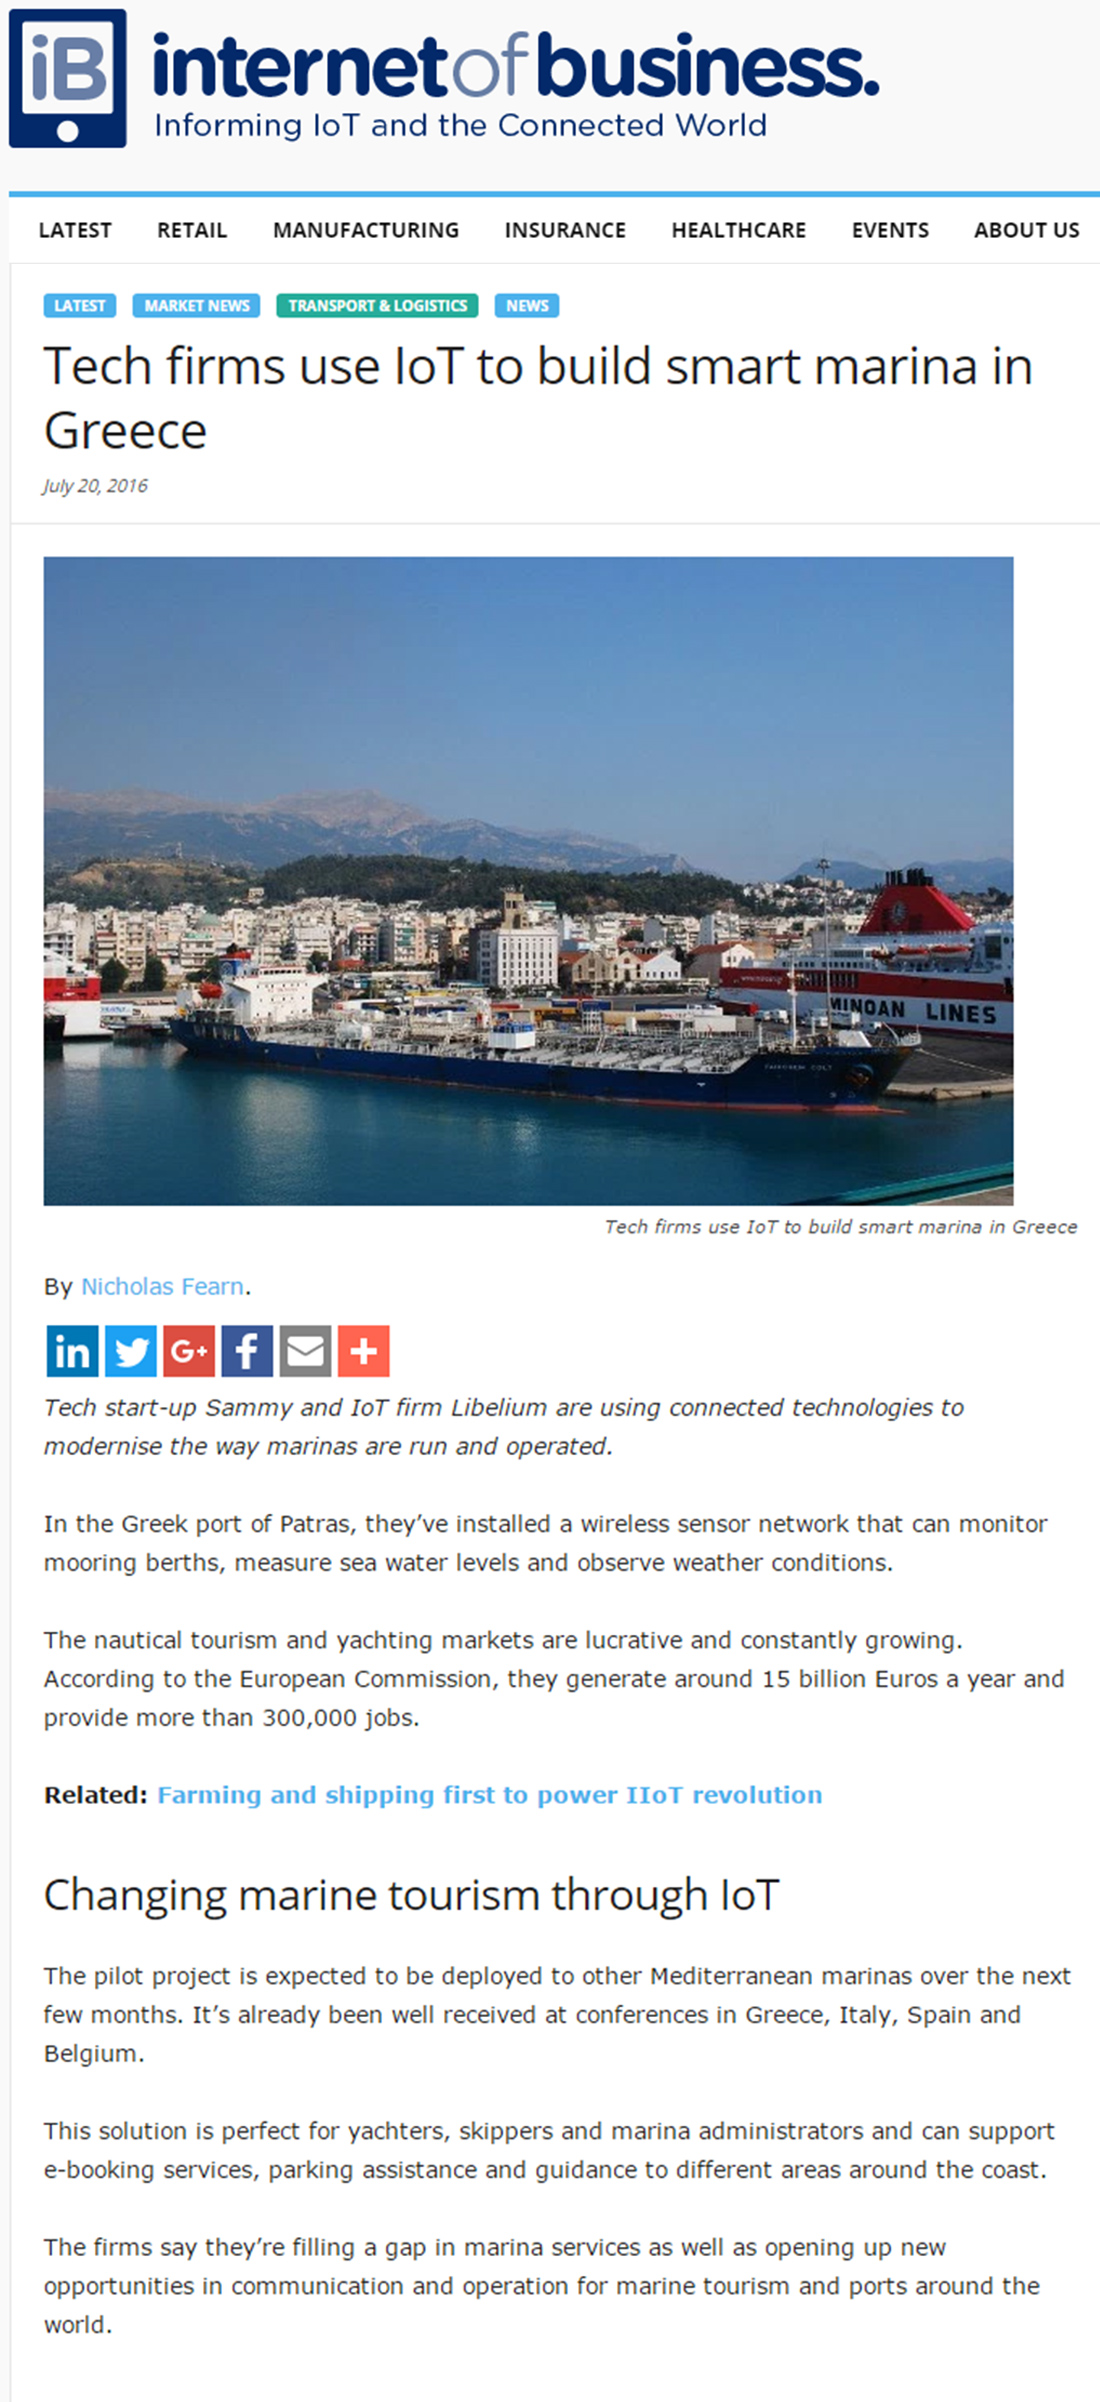 Tech firms use IoT to build smart marina in Greece